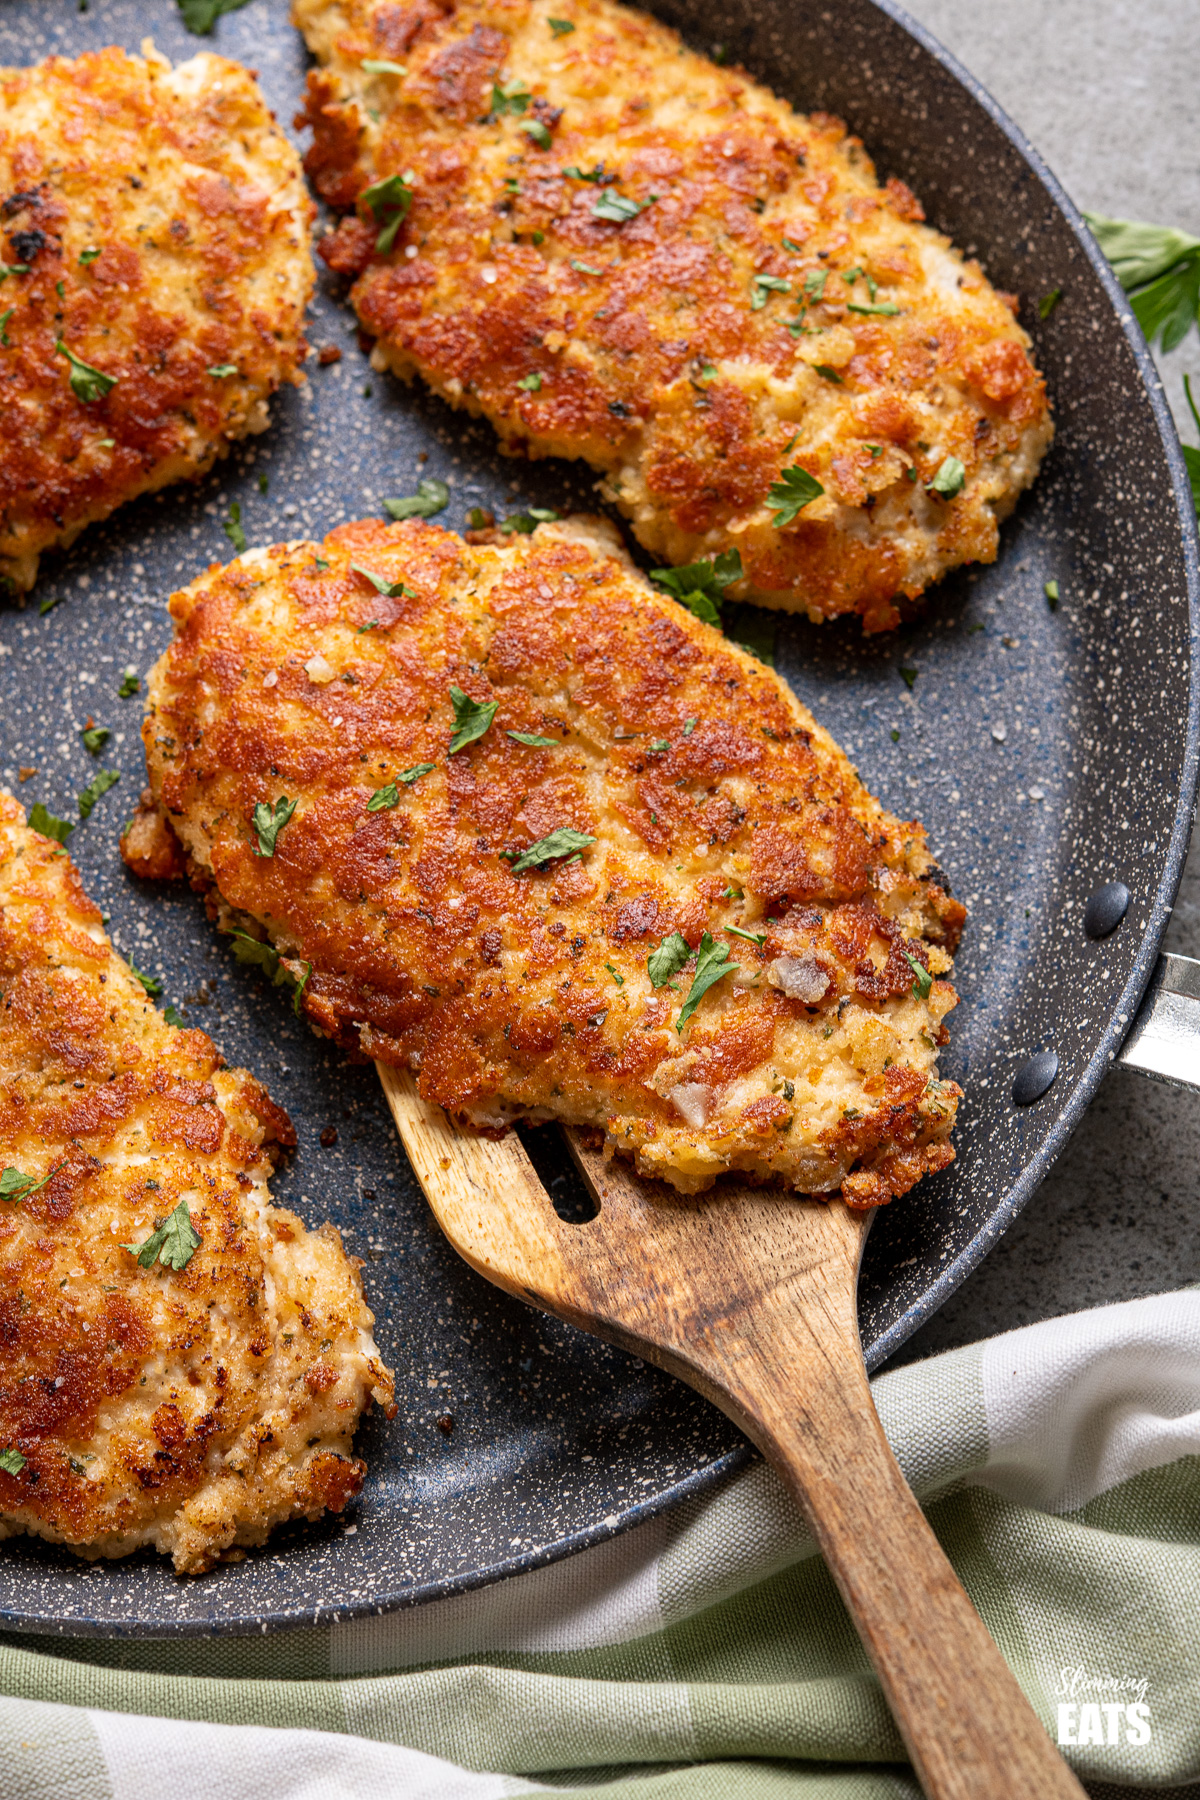 Four Golden Parmesan Crusted Chicken cutlets on frying pan with wooden spatual